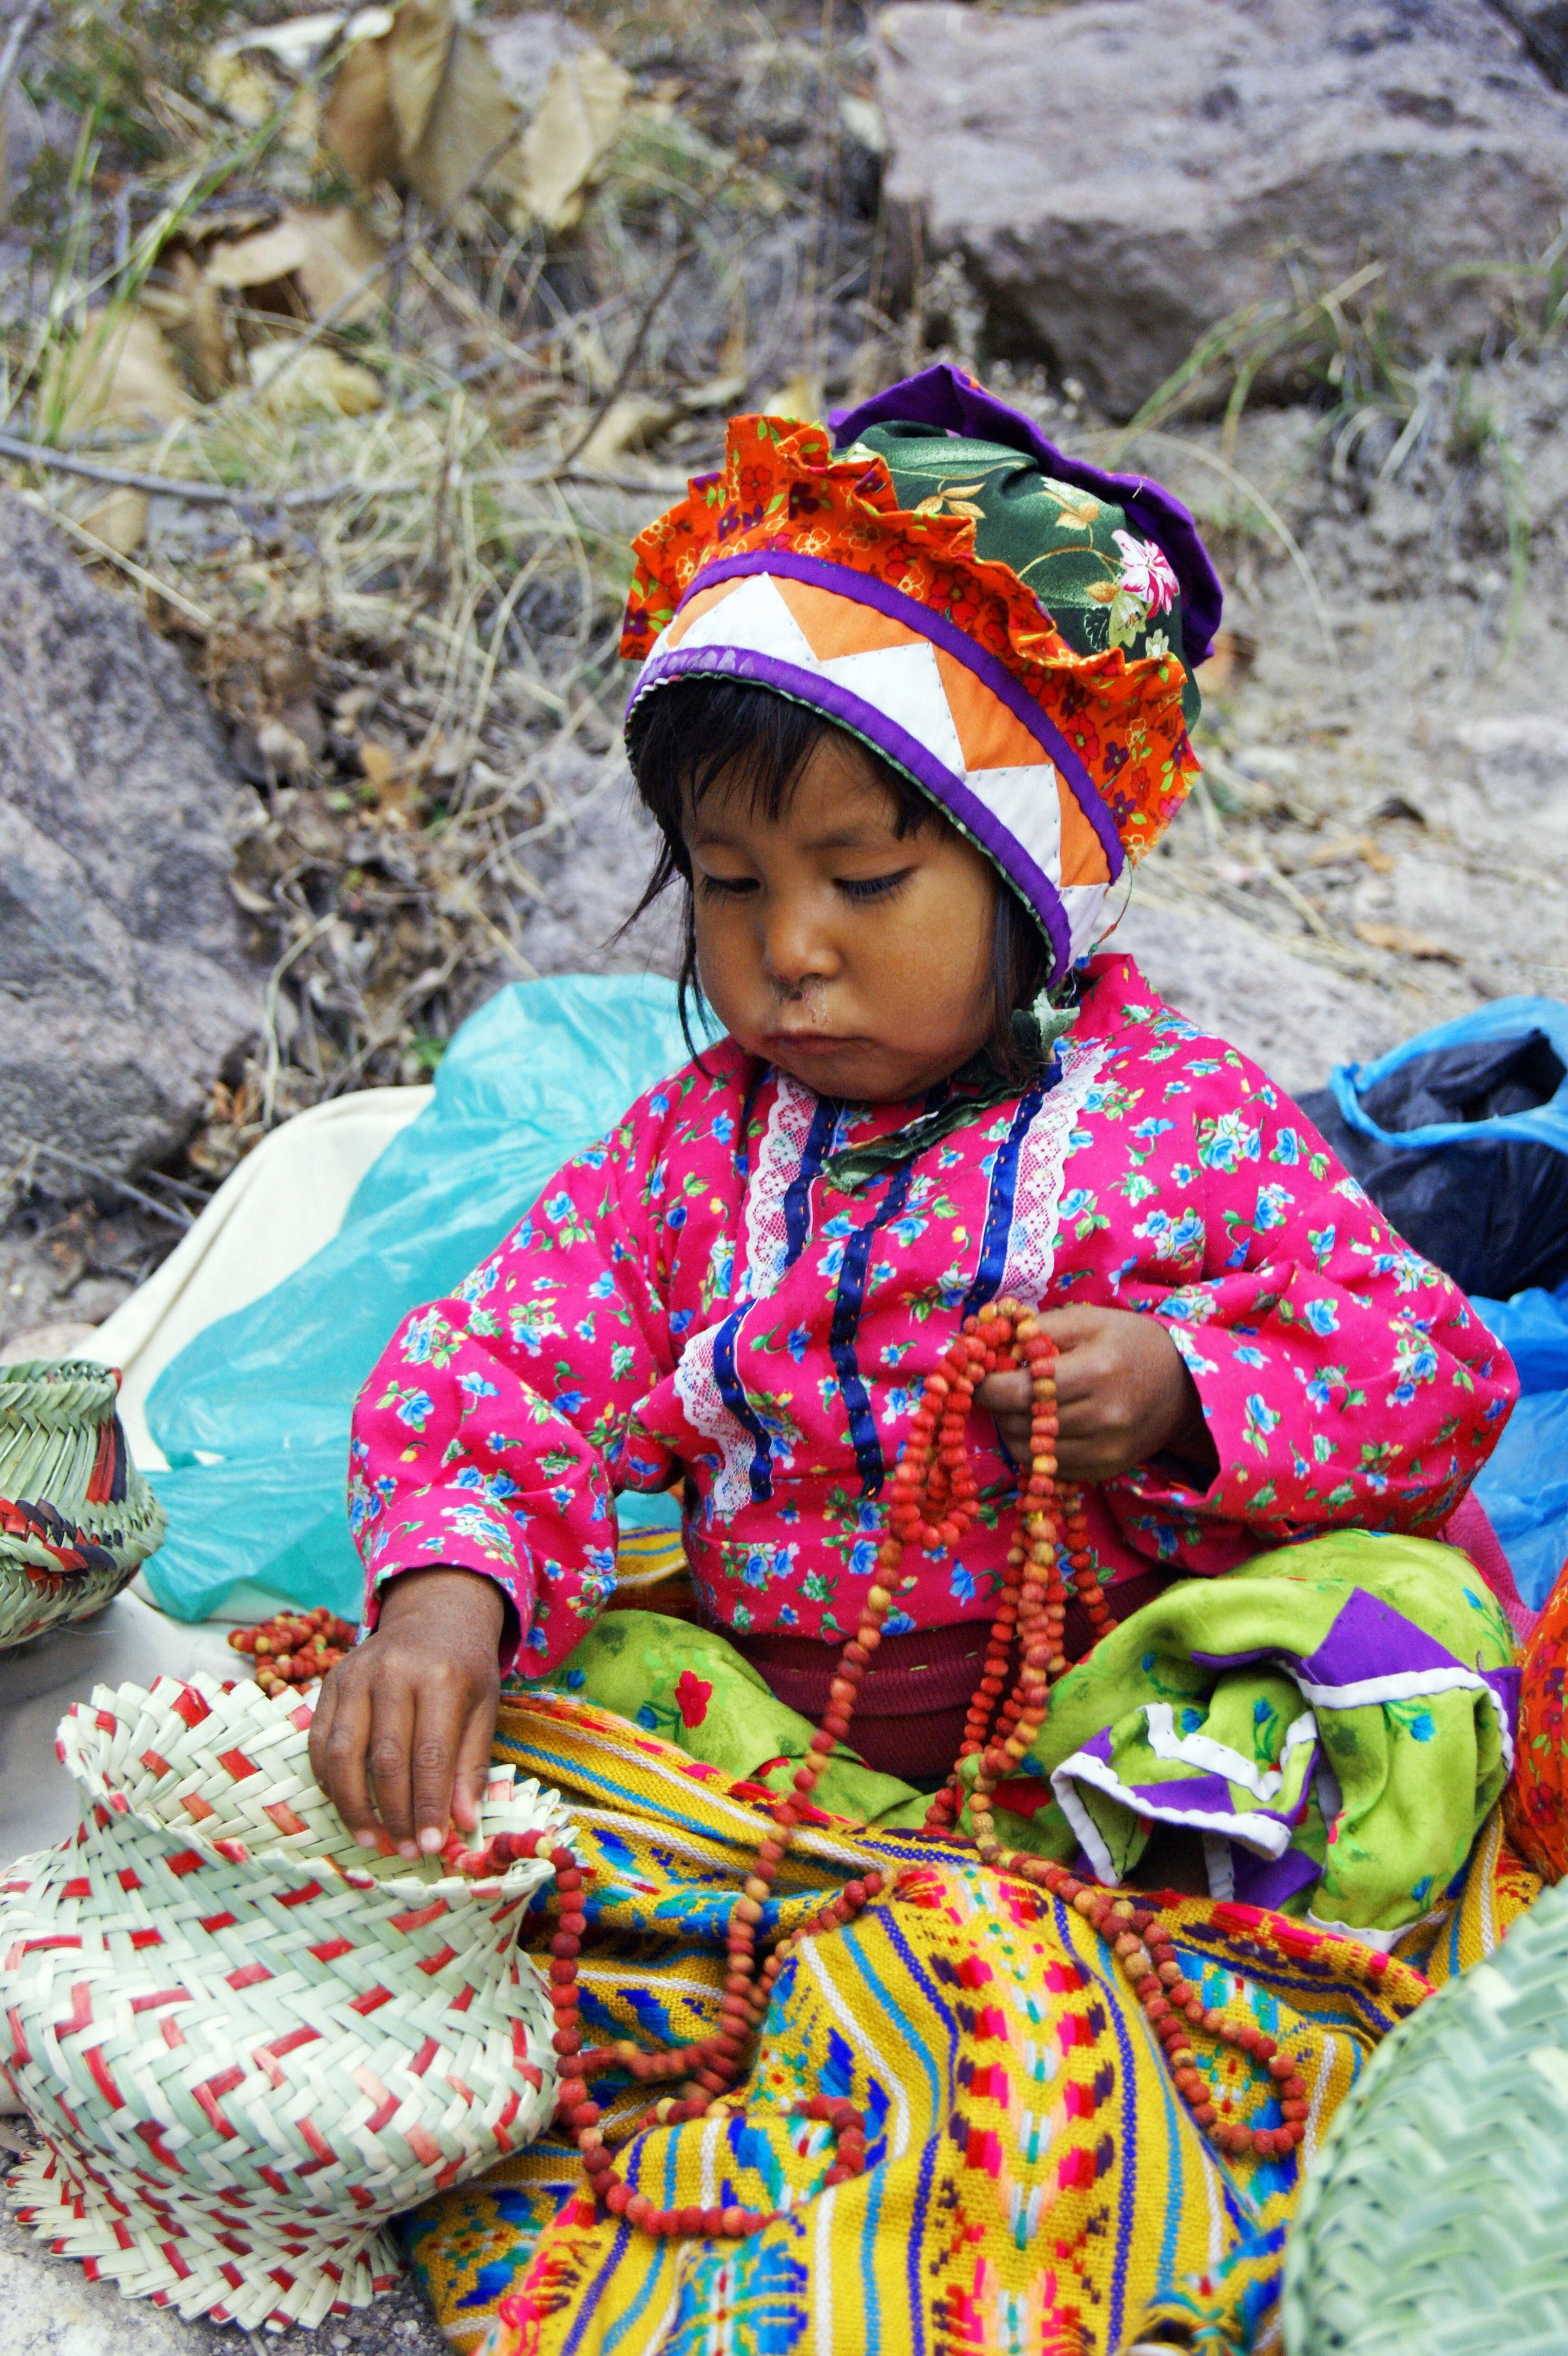 girl carrying yellow and white bags A young Tarahumara girl selling baskets and jewellry in the Copper Canyon I love to learn about other cultures and the Tarahumara cult...